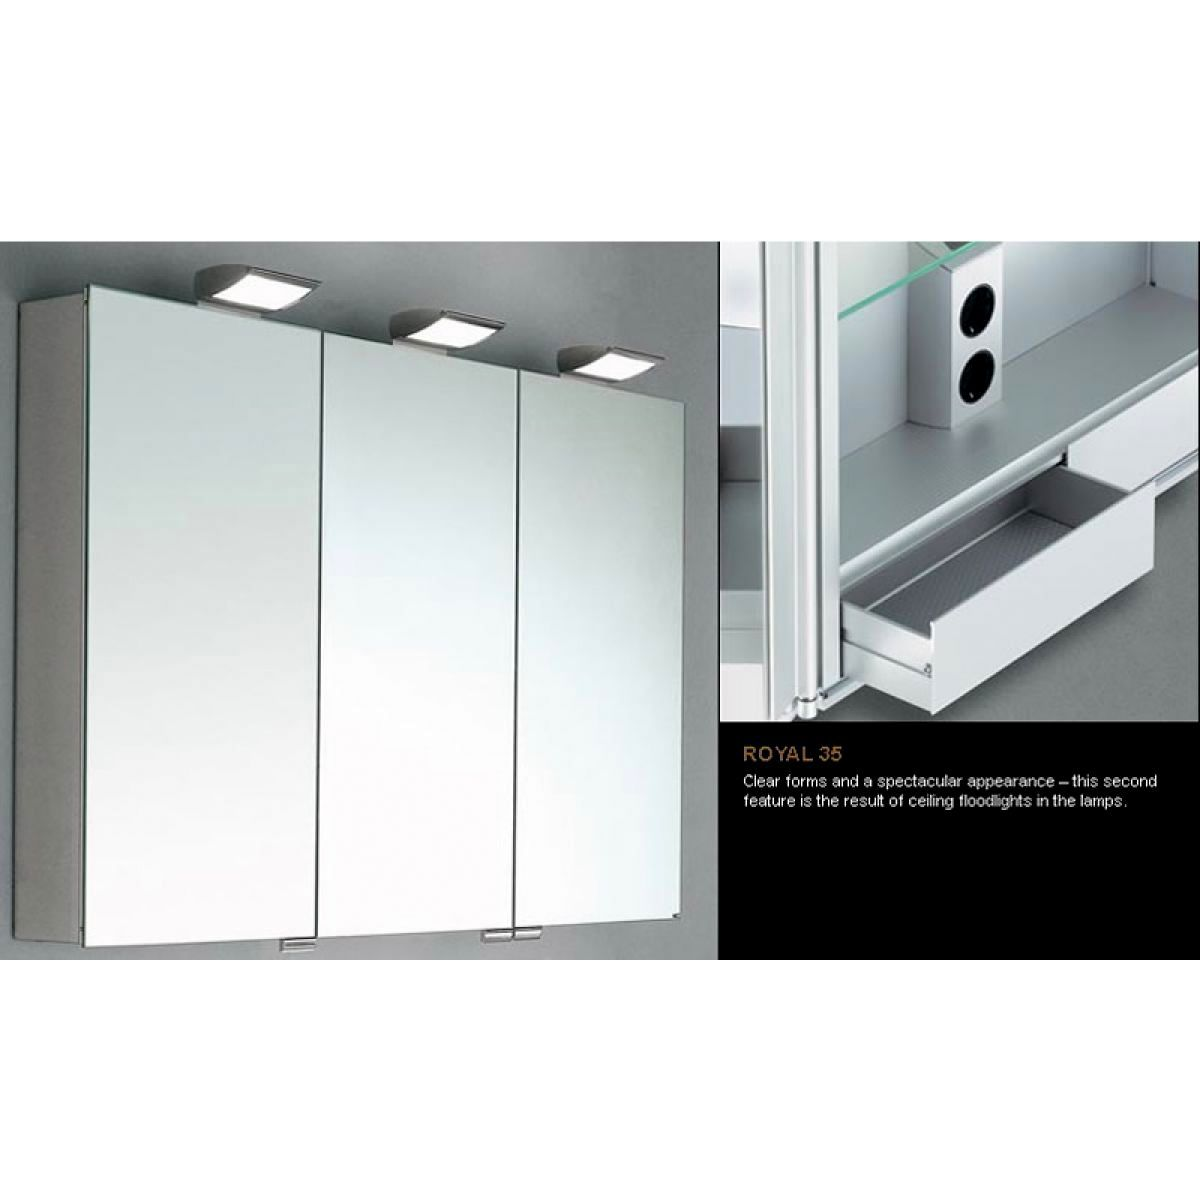 Keuco royal 35 mirror cabinet uk bathrooms - Bathroom cabinets keuco ...